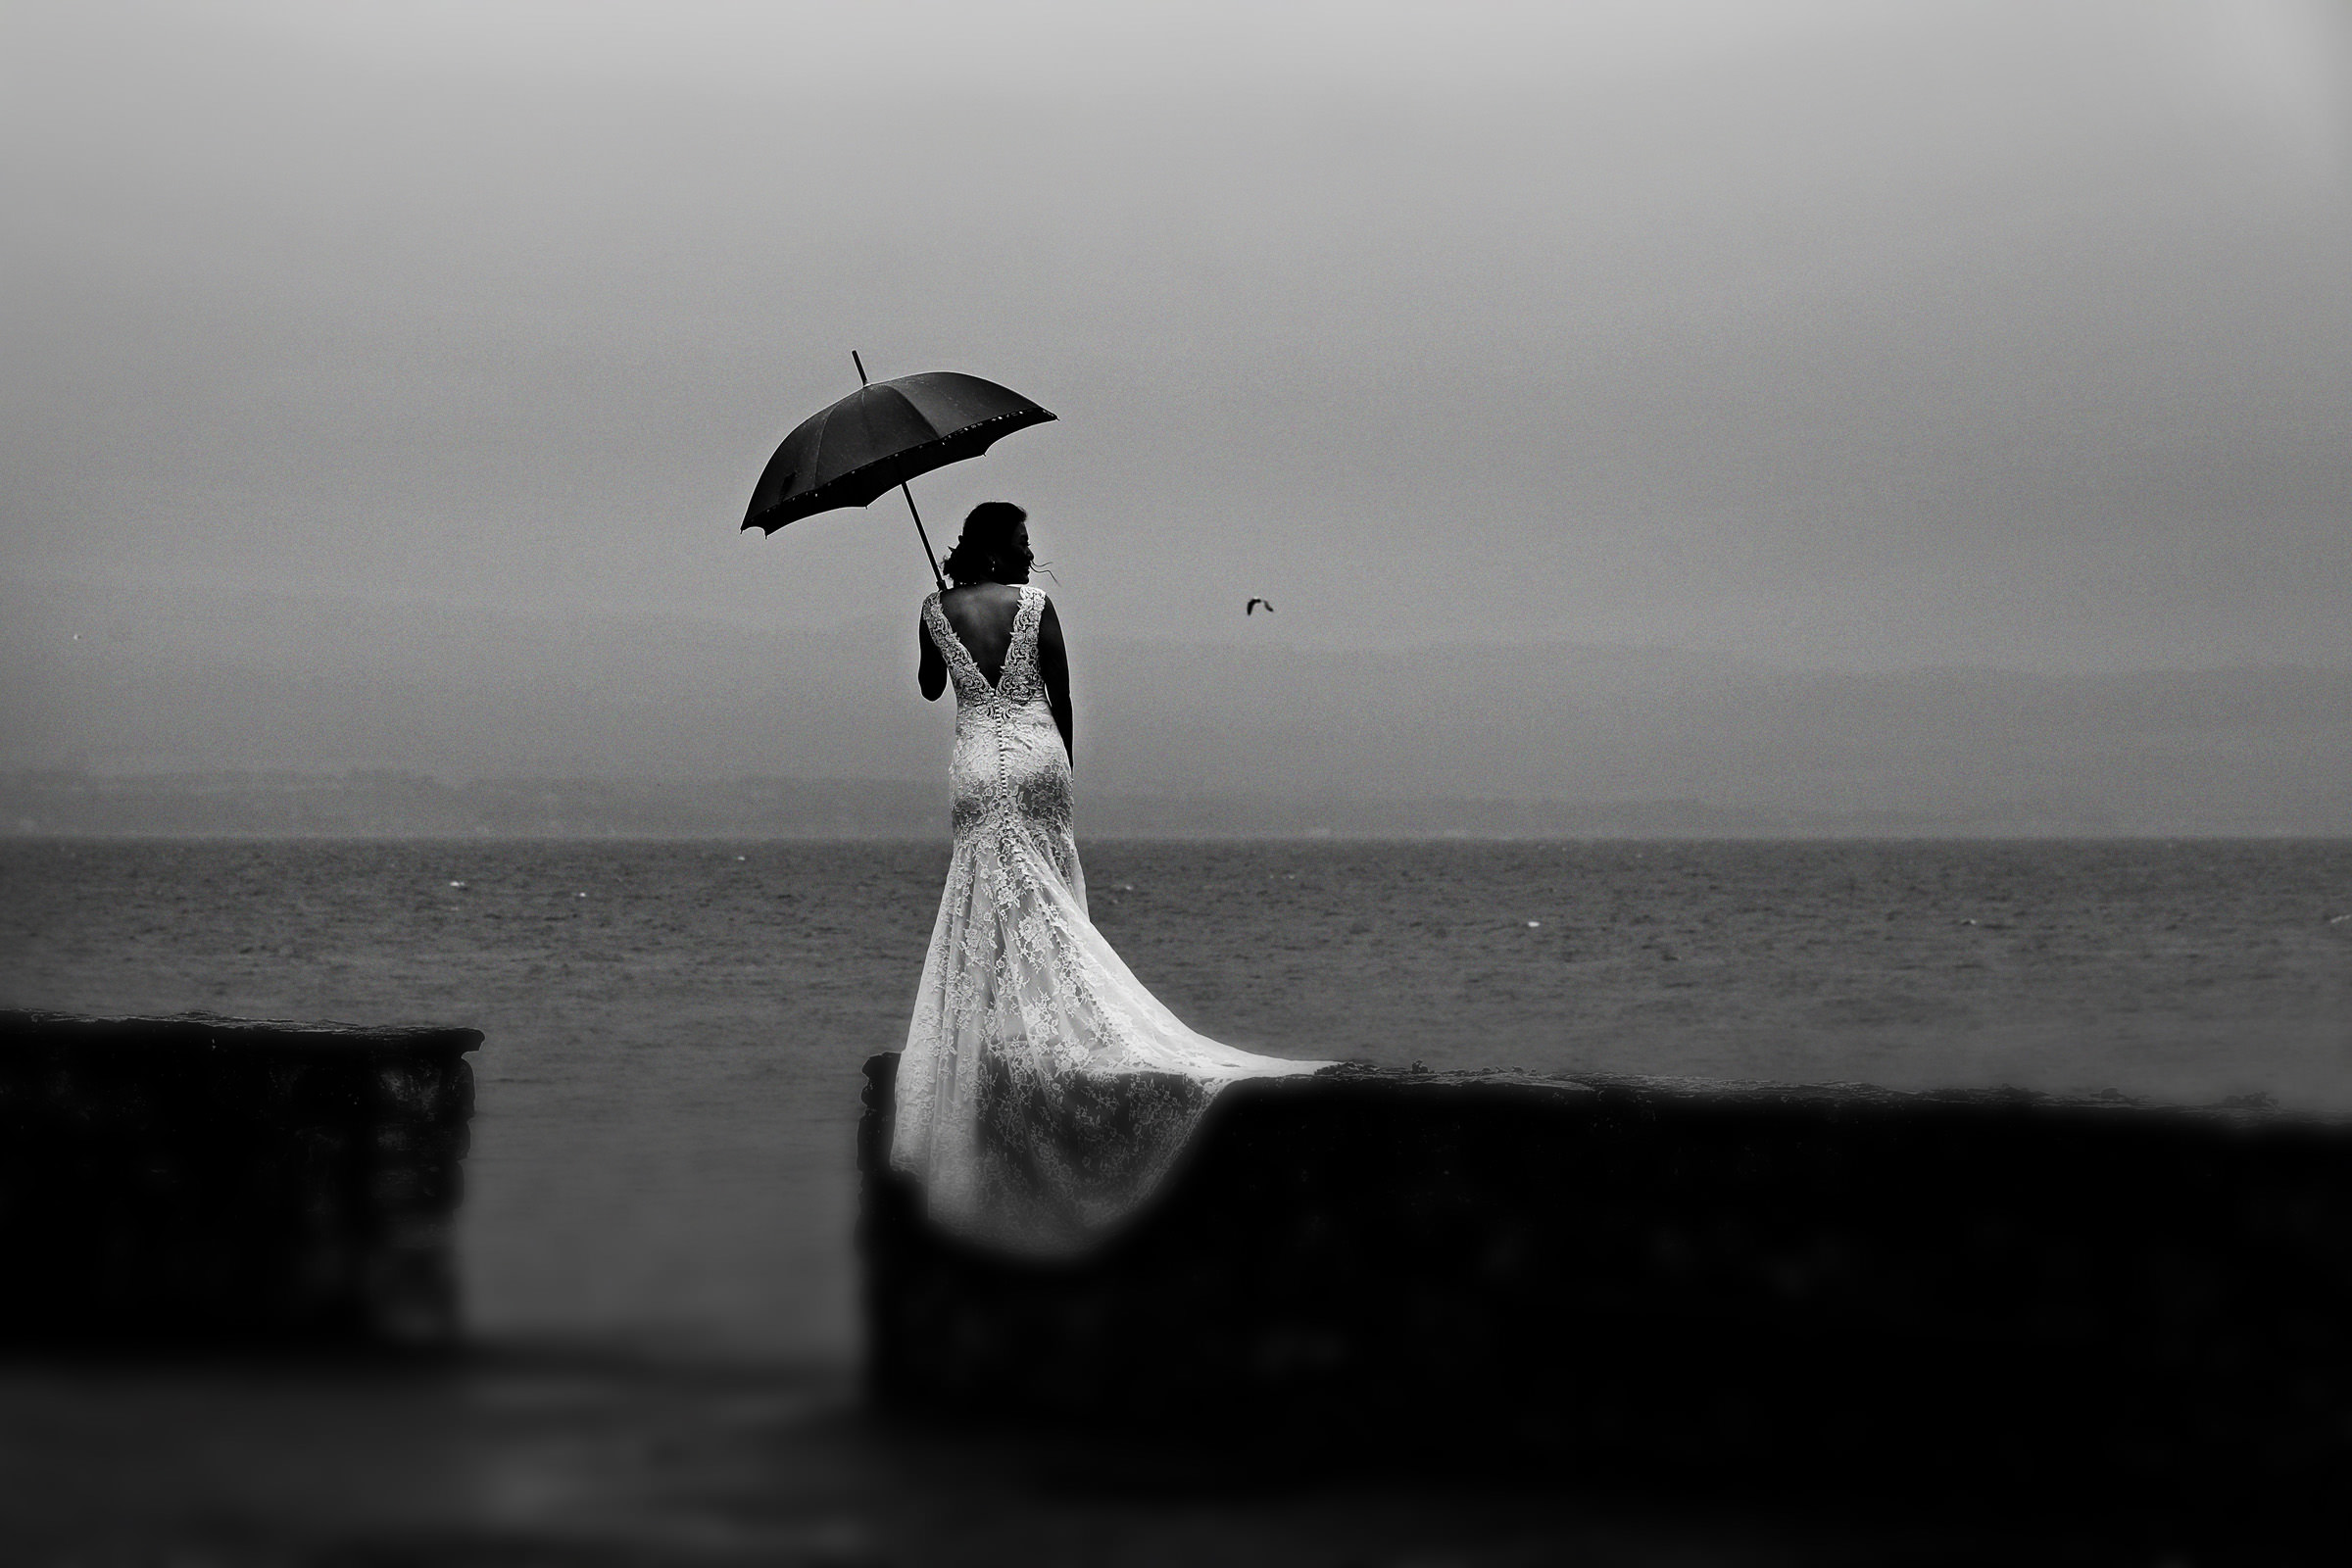 Moody black and white portrait of bride on rainy day by the beach, by Franck Boutonnet